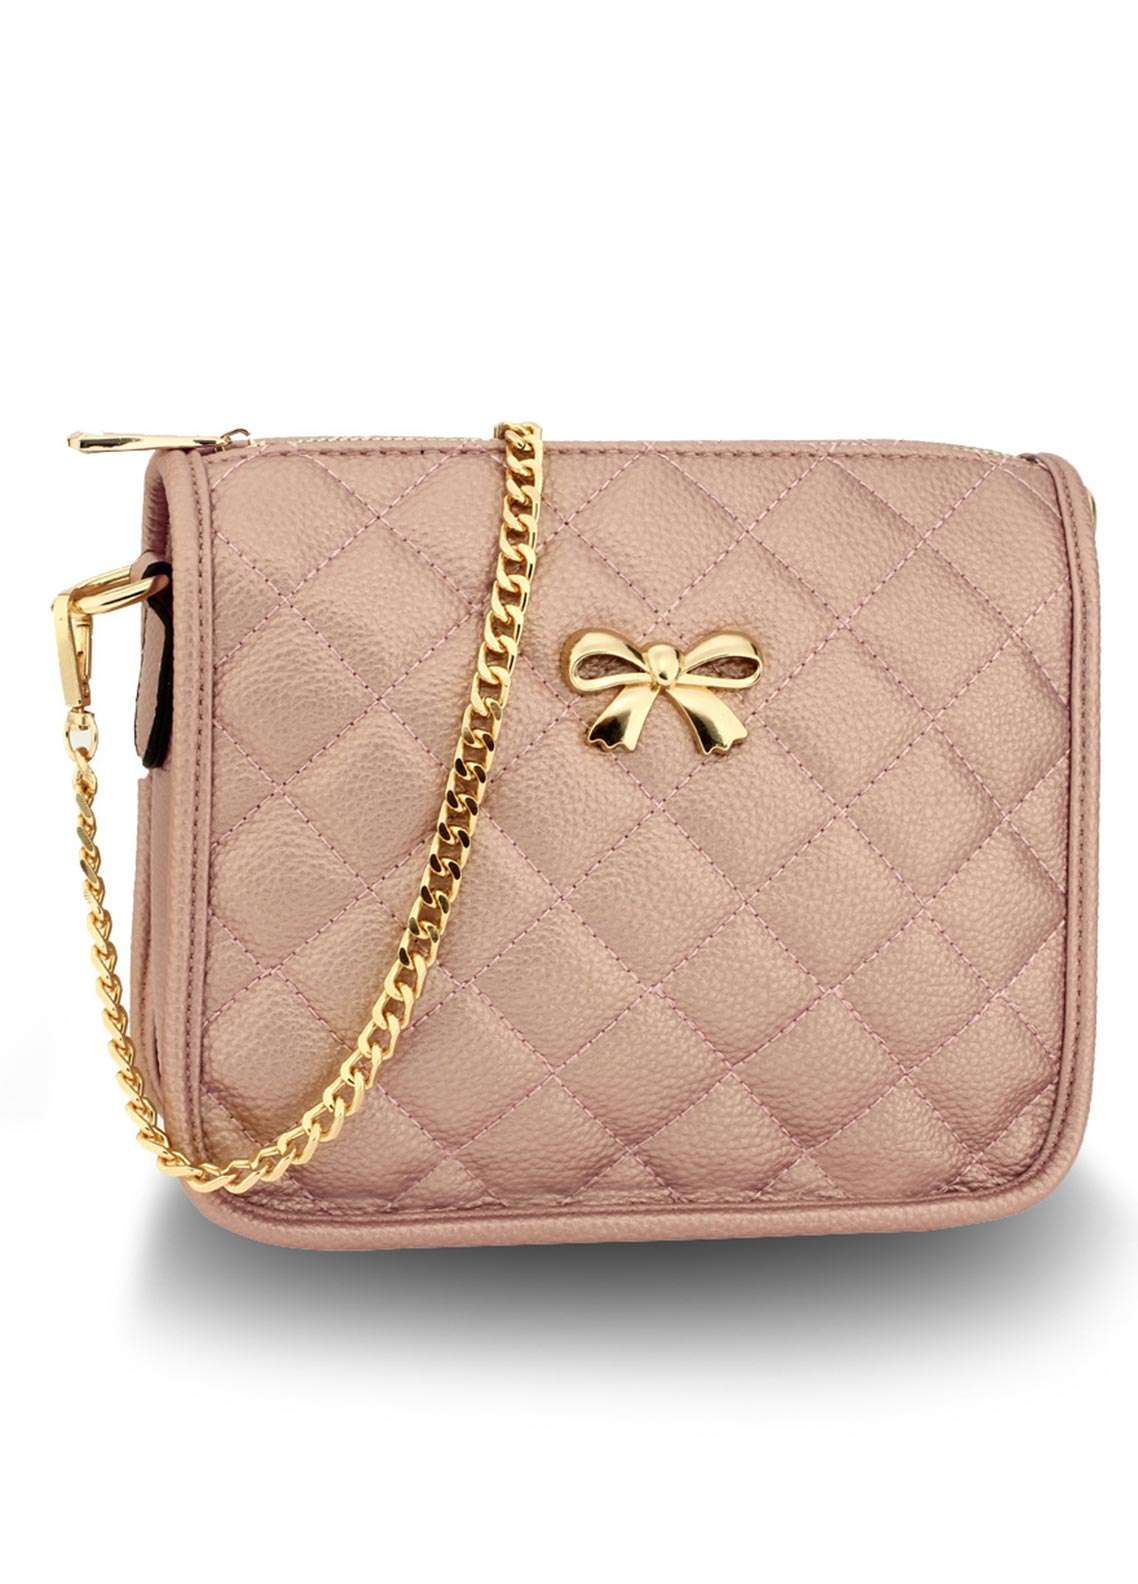 Anna Grace London Faux Leather Crossbody  Bags  for Women  Champagne with Quilted Texture